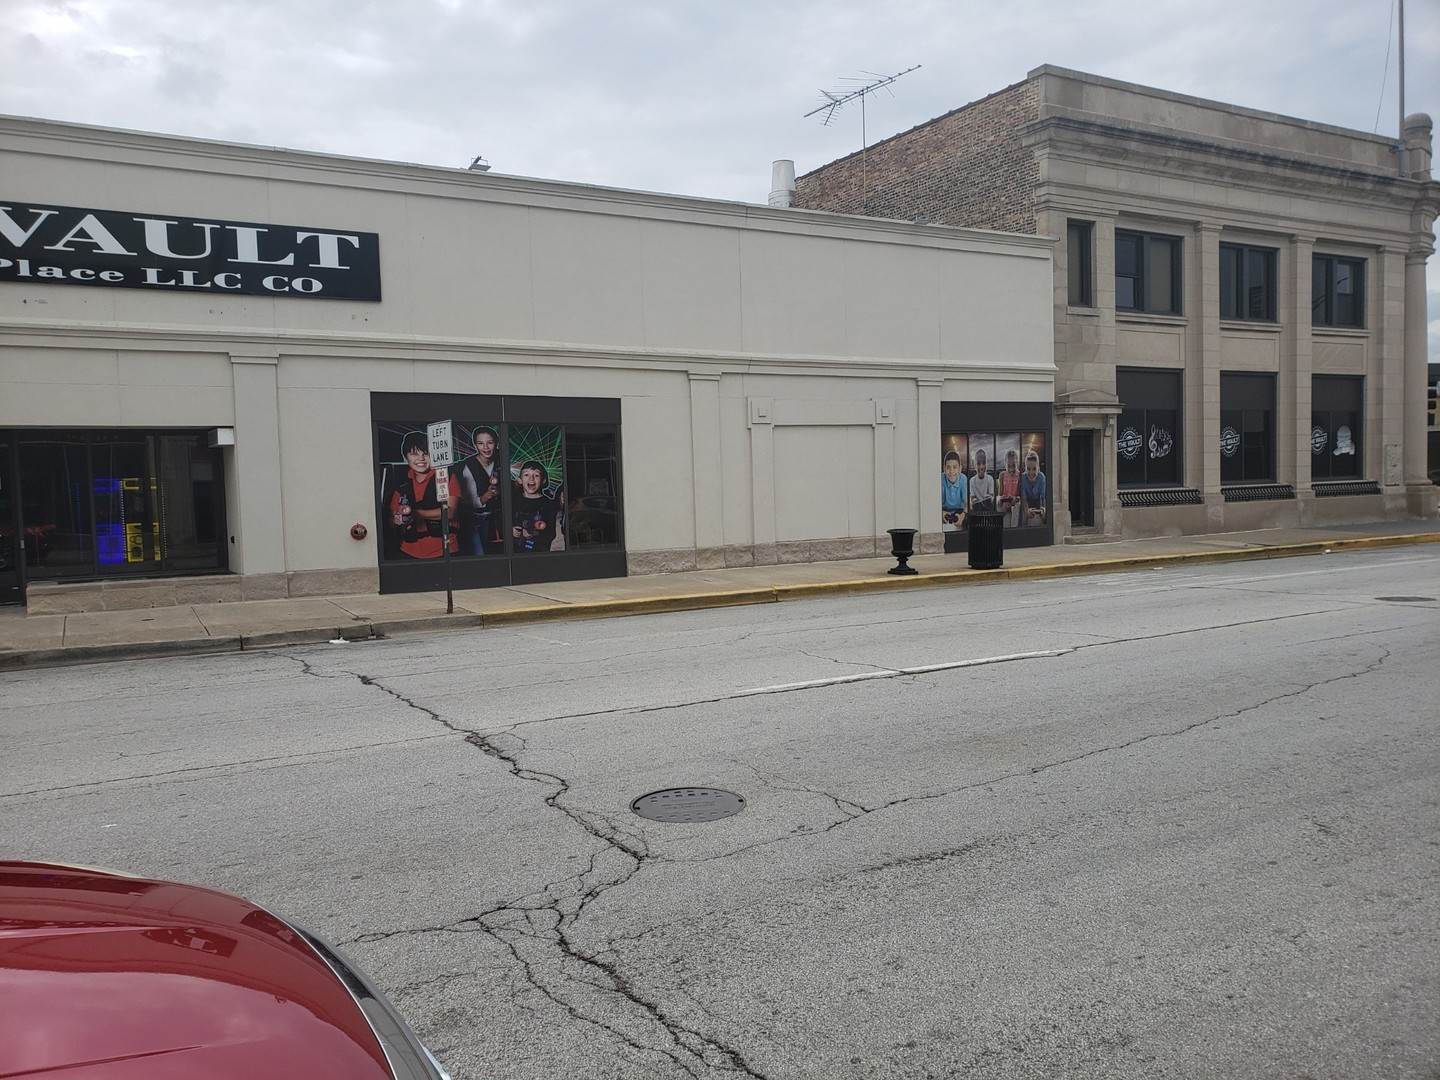 Commercial at 13057 Western Avenue Blue Island, Illinois 60406 United States